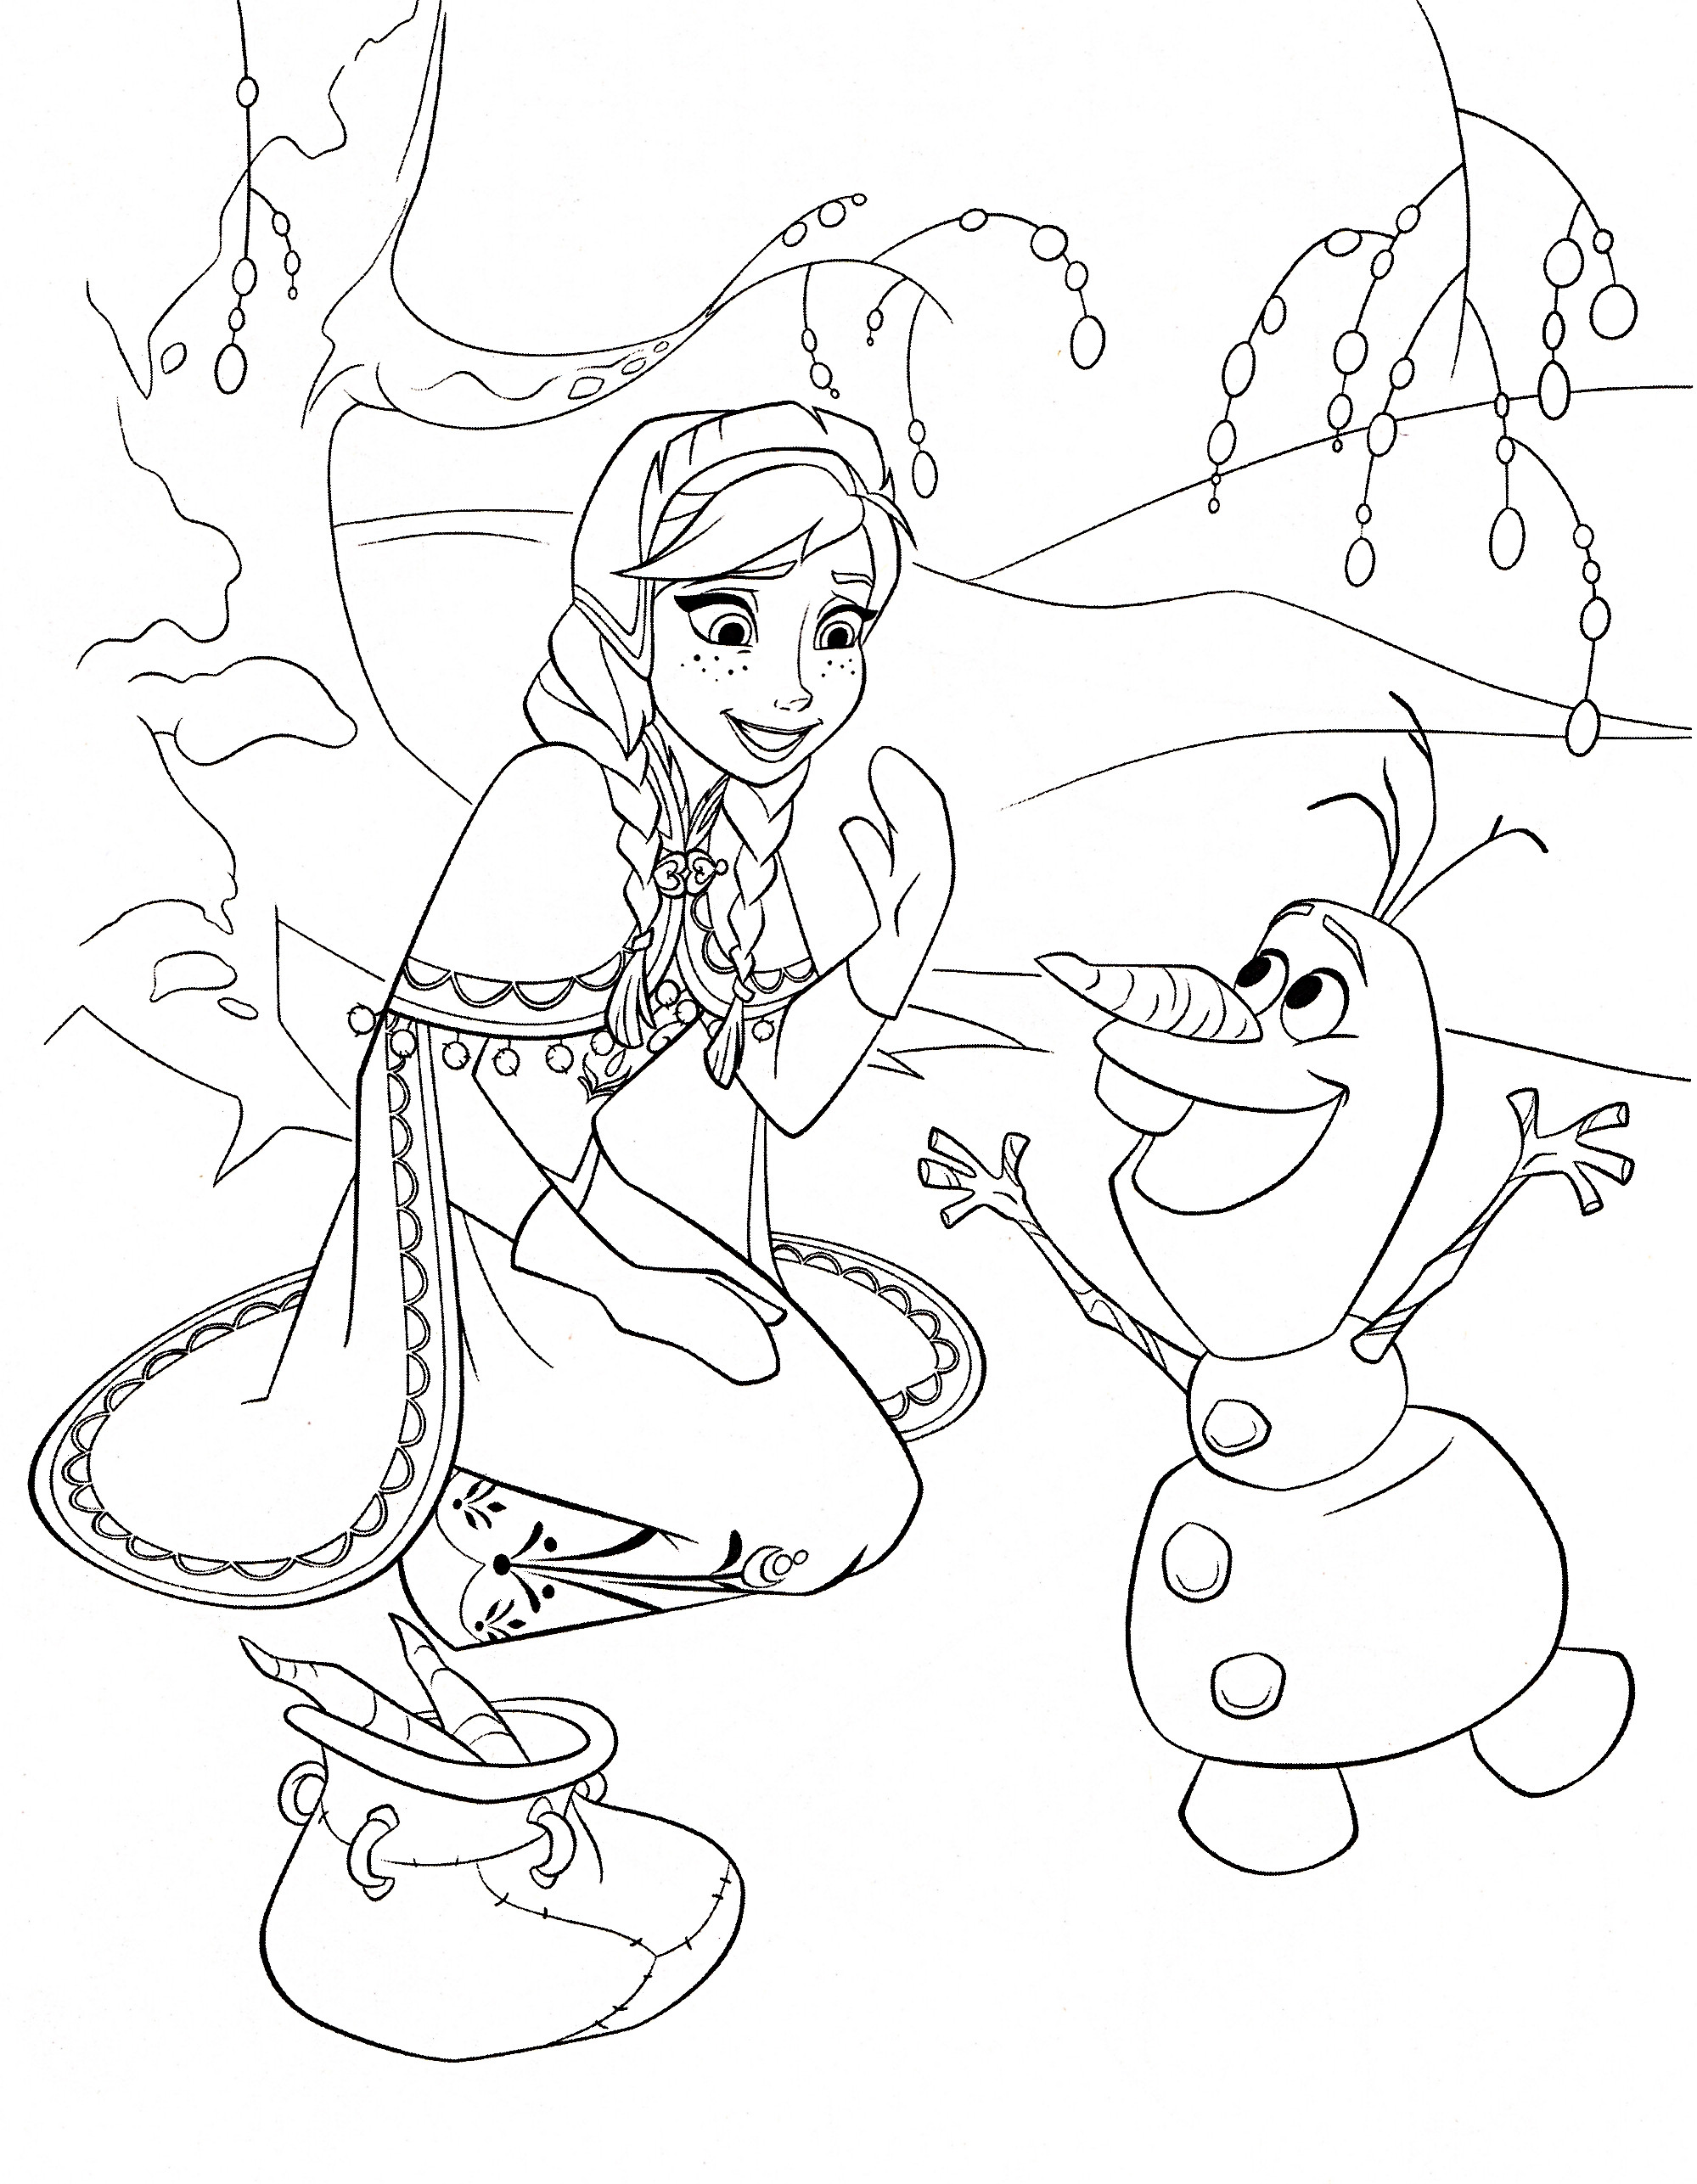 Free Coloring Pages Disney Frozen  FREE Frozen Printable Coloring & Activity Pages Plus FREE